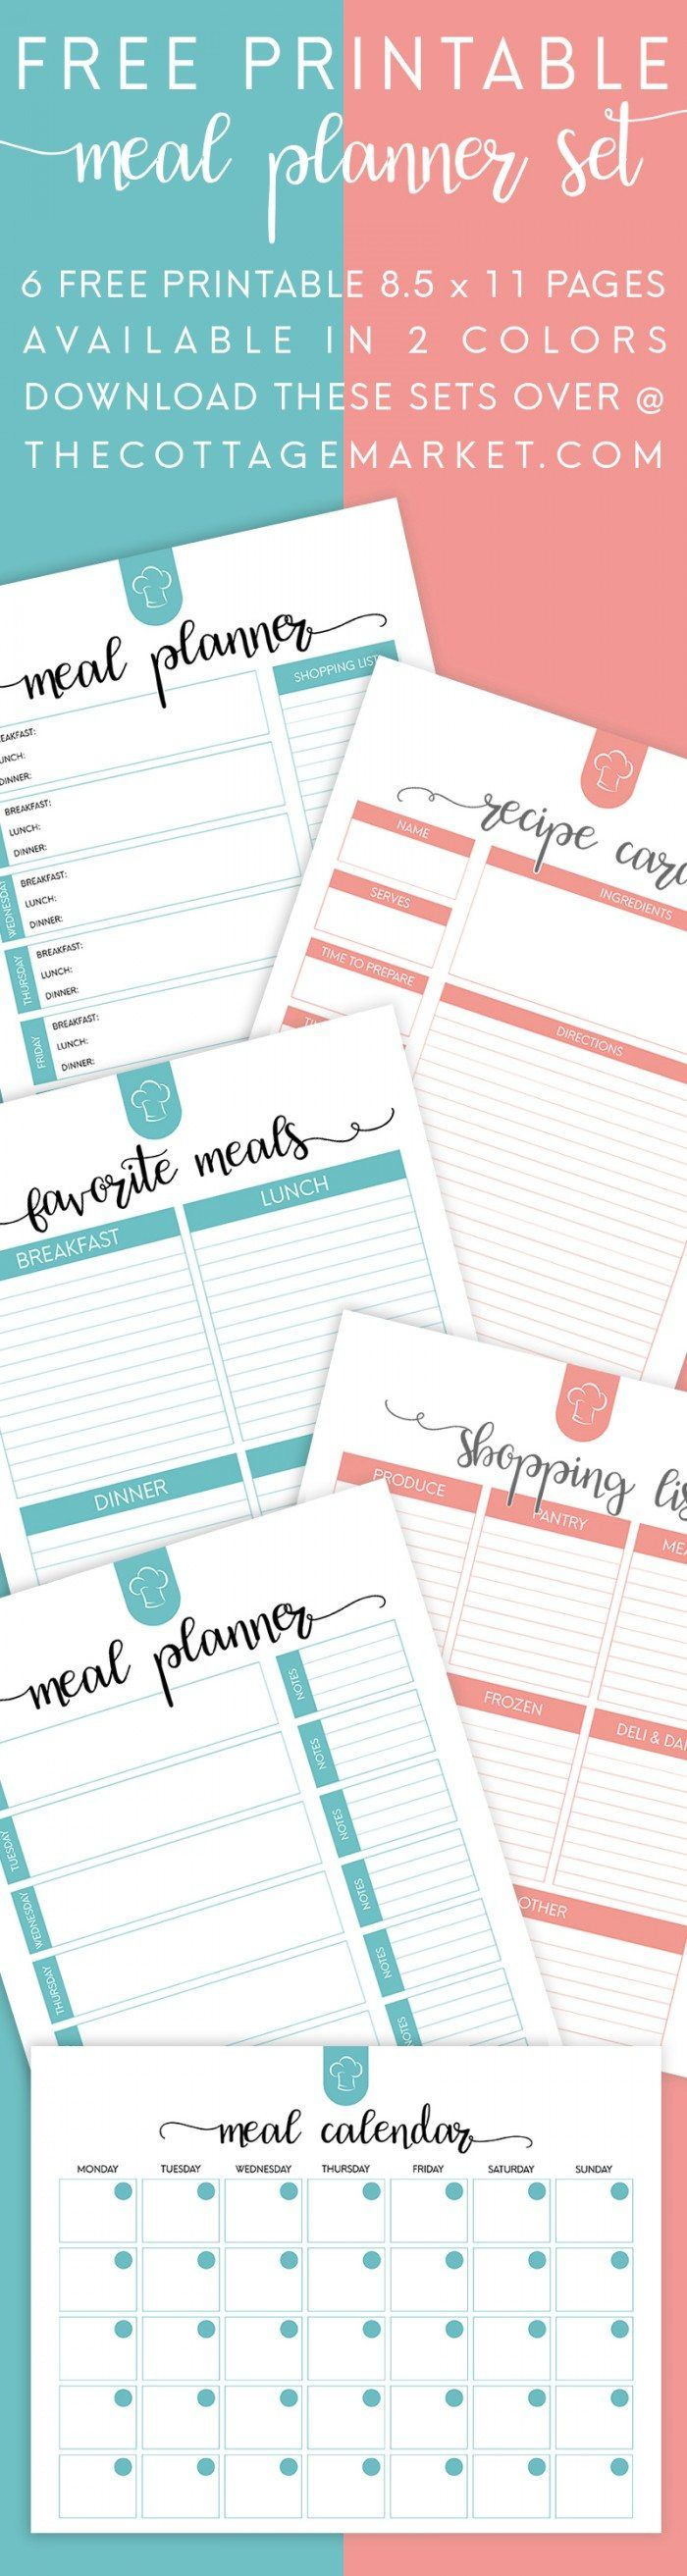 FREE Printable Meal Planning Set